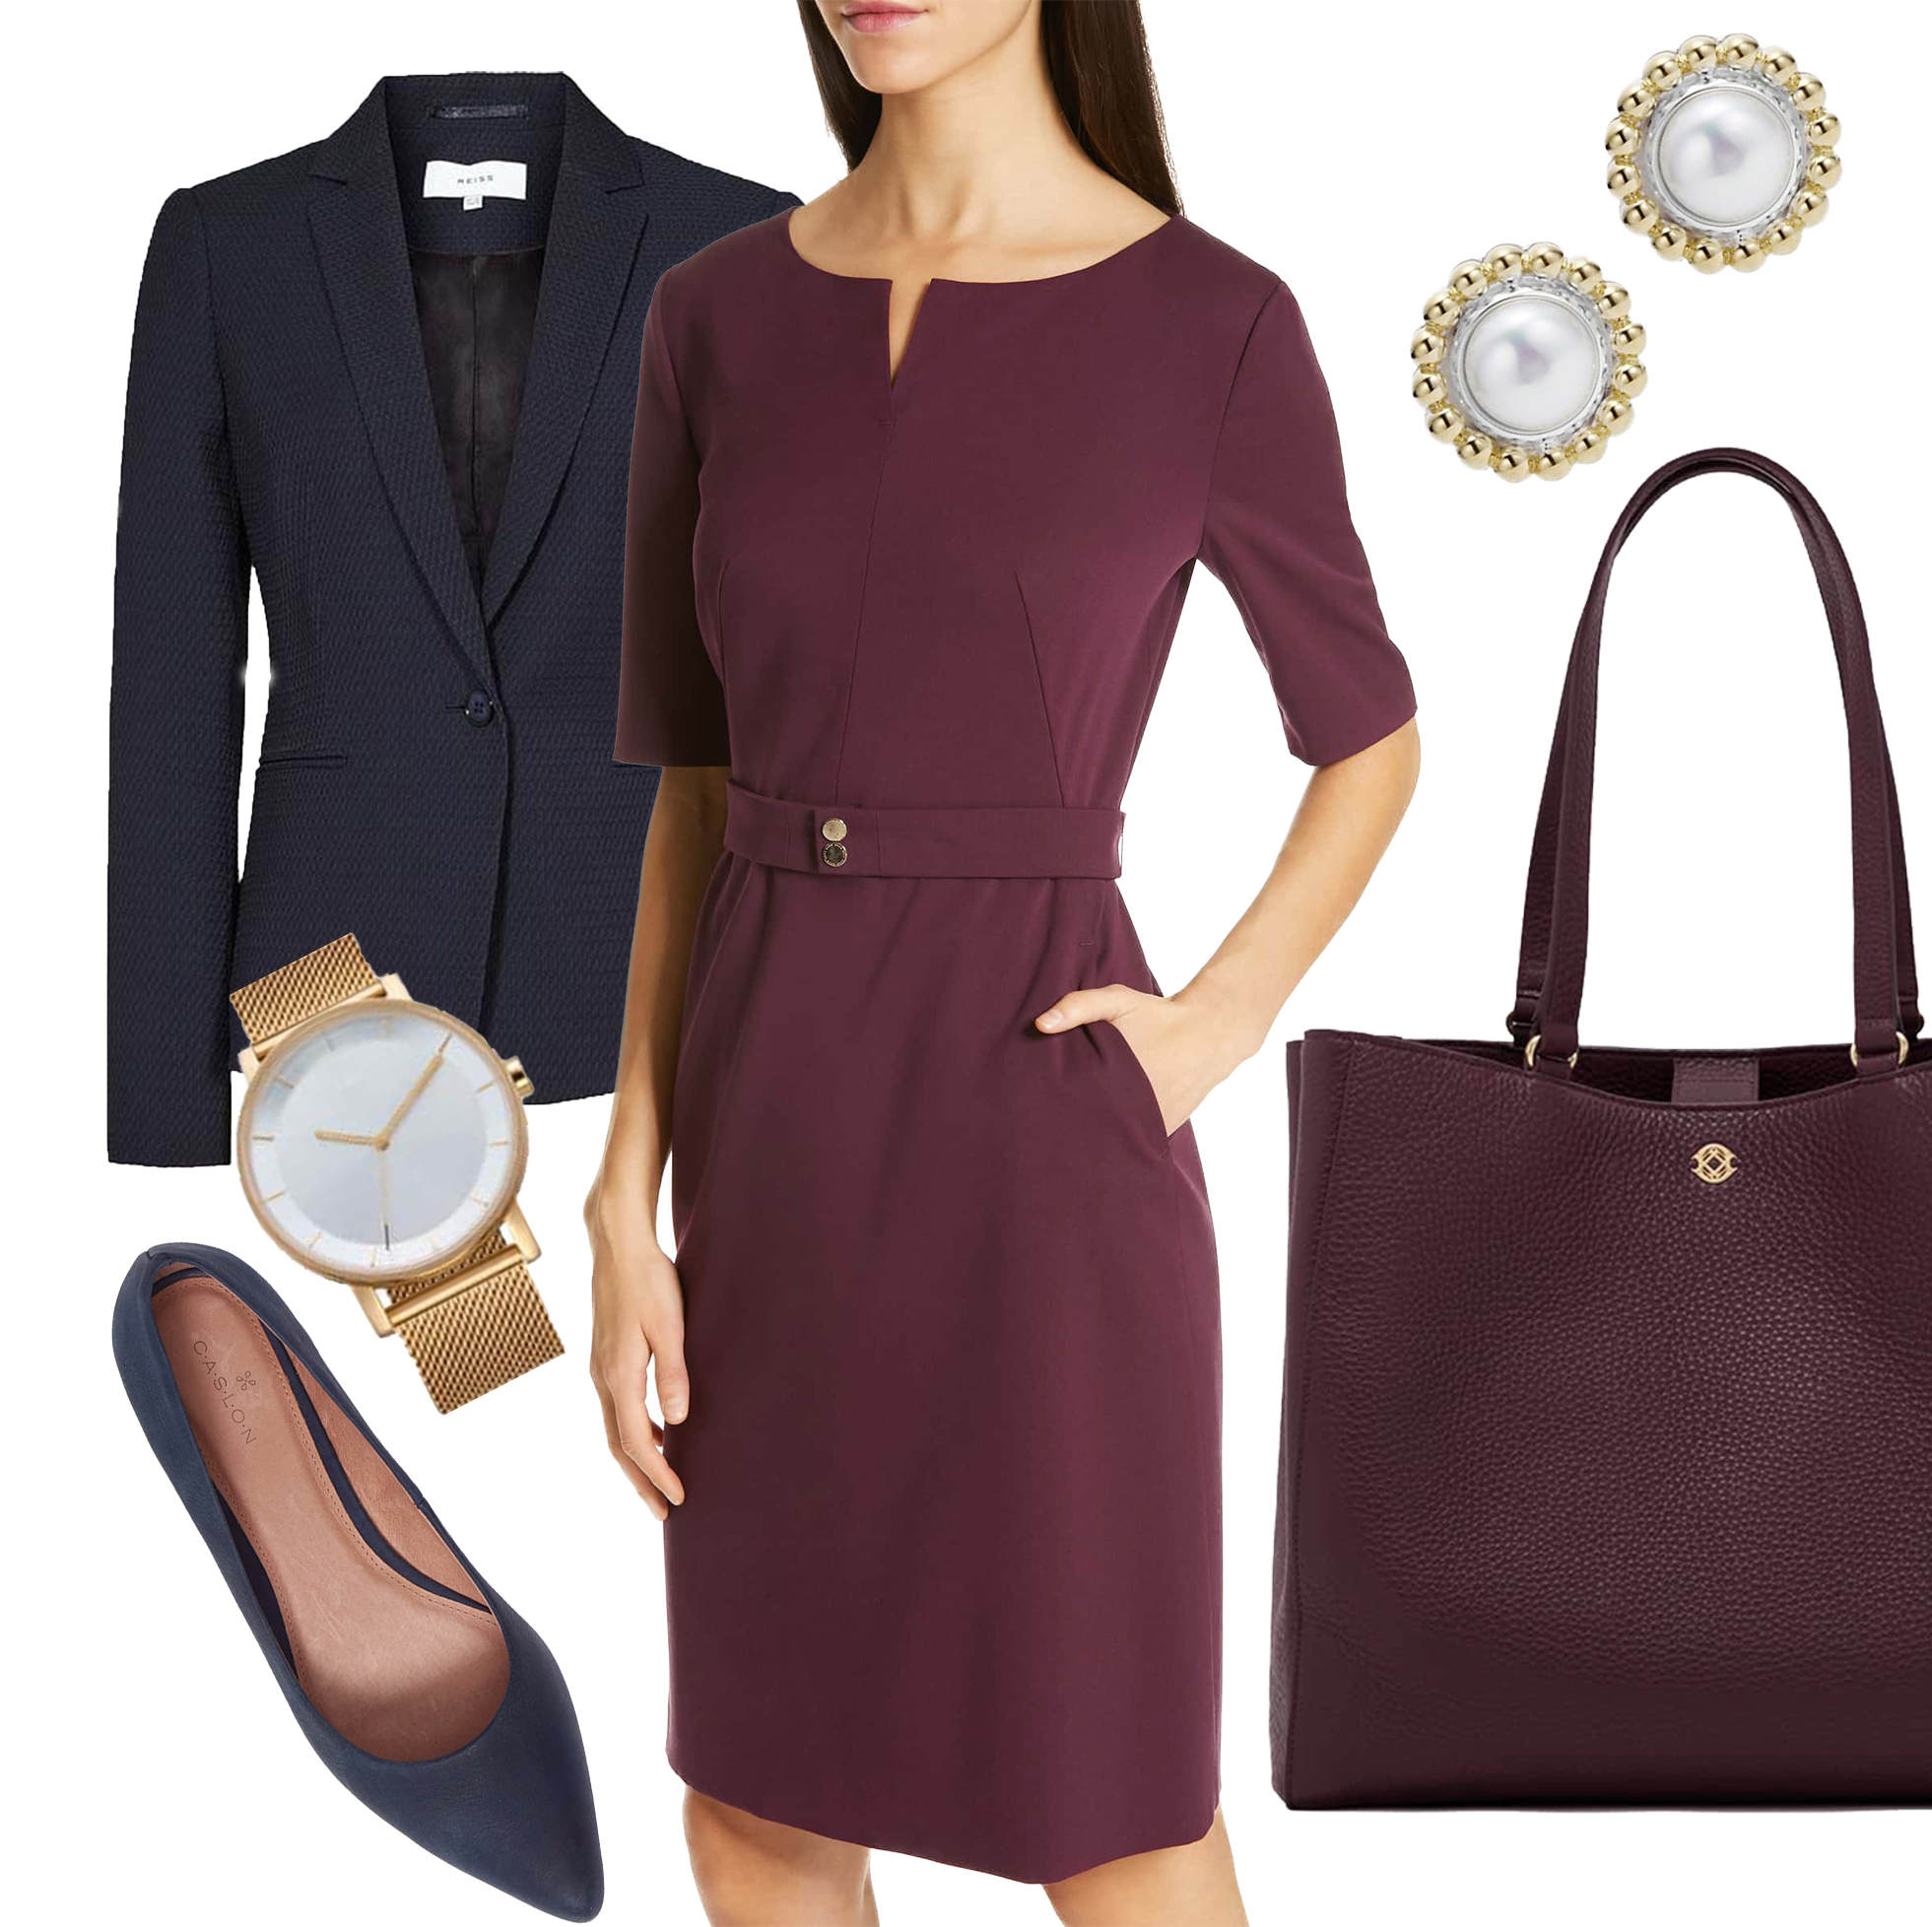 Formal Business - Go-To Pieces:-Structured Dresses-Silk/higher-end blouses-Pointed heel or flat-Traditional blazer/suit -Simple, classic jewelry-Neutral, solid colors